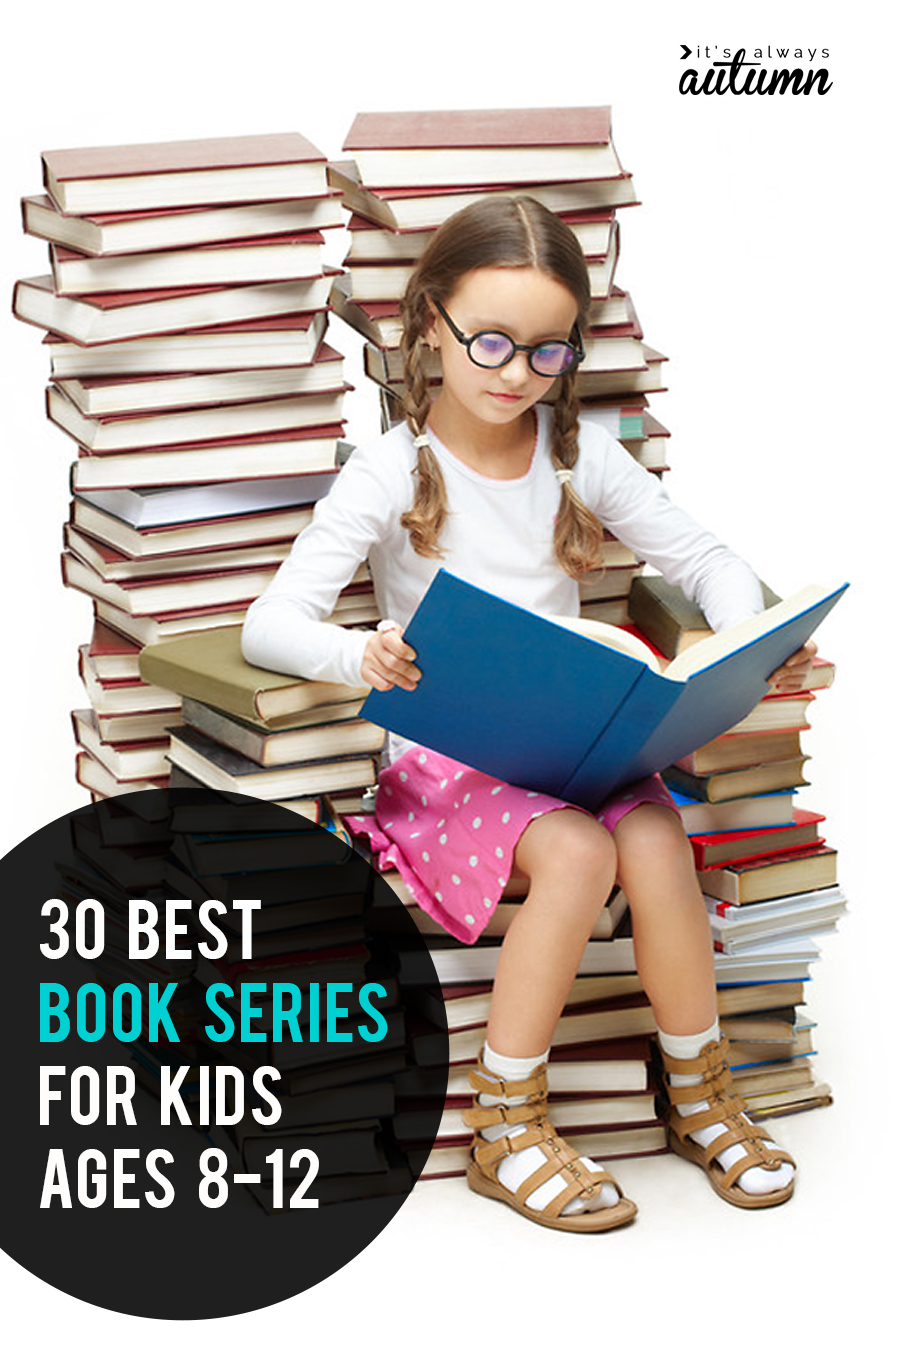 Keep your kids reading with 30 fantastic book series for kids! Great book recommendations for kids ages 8-12